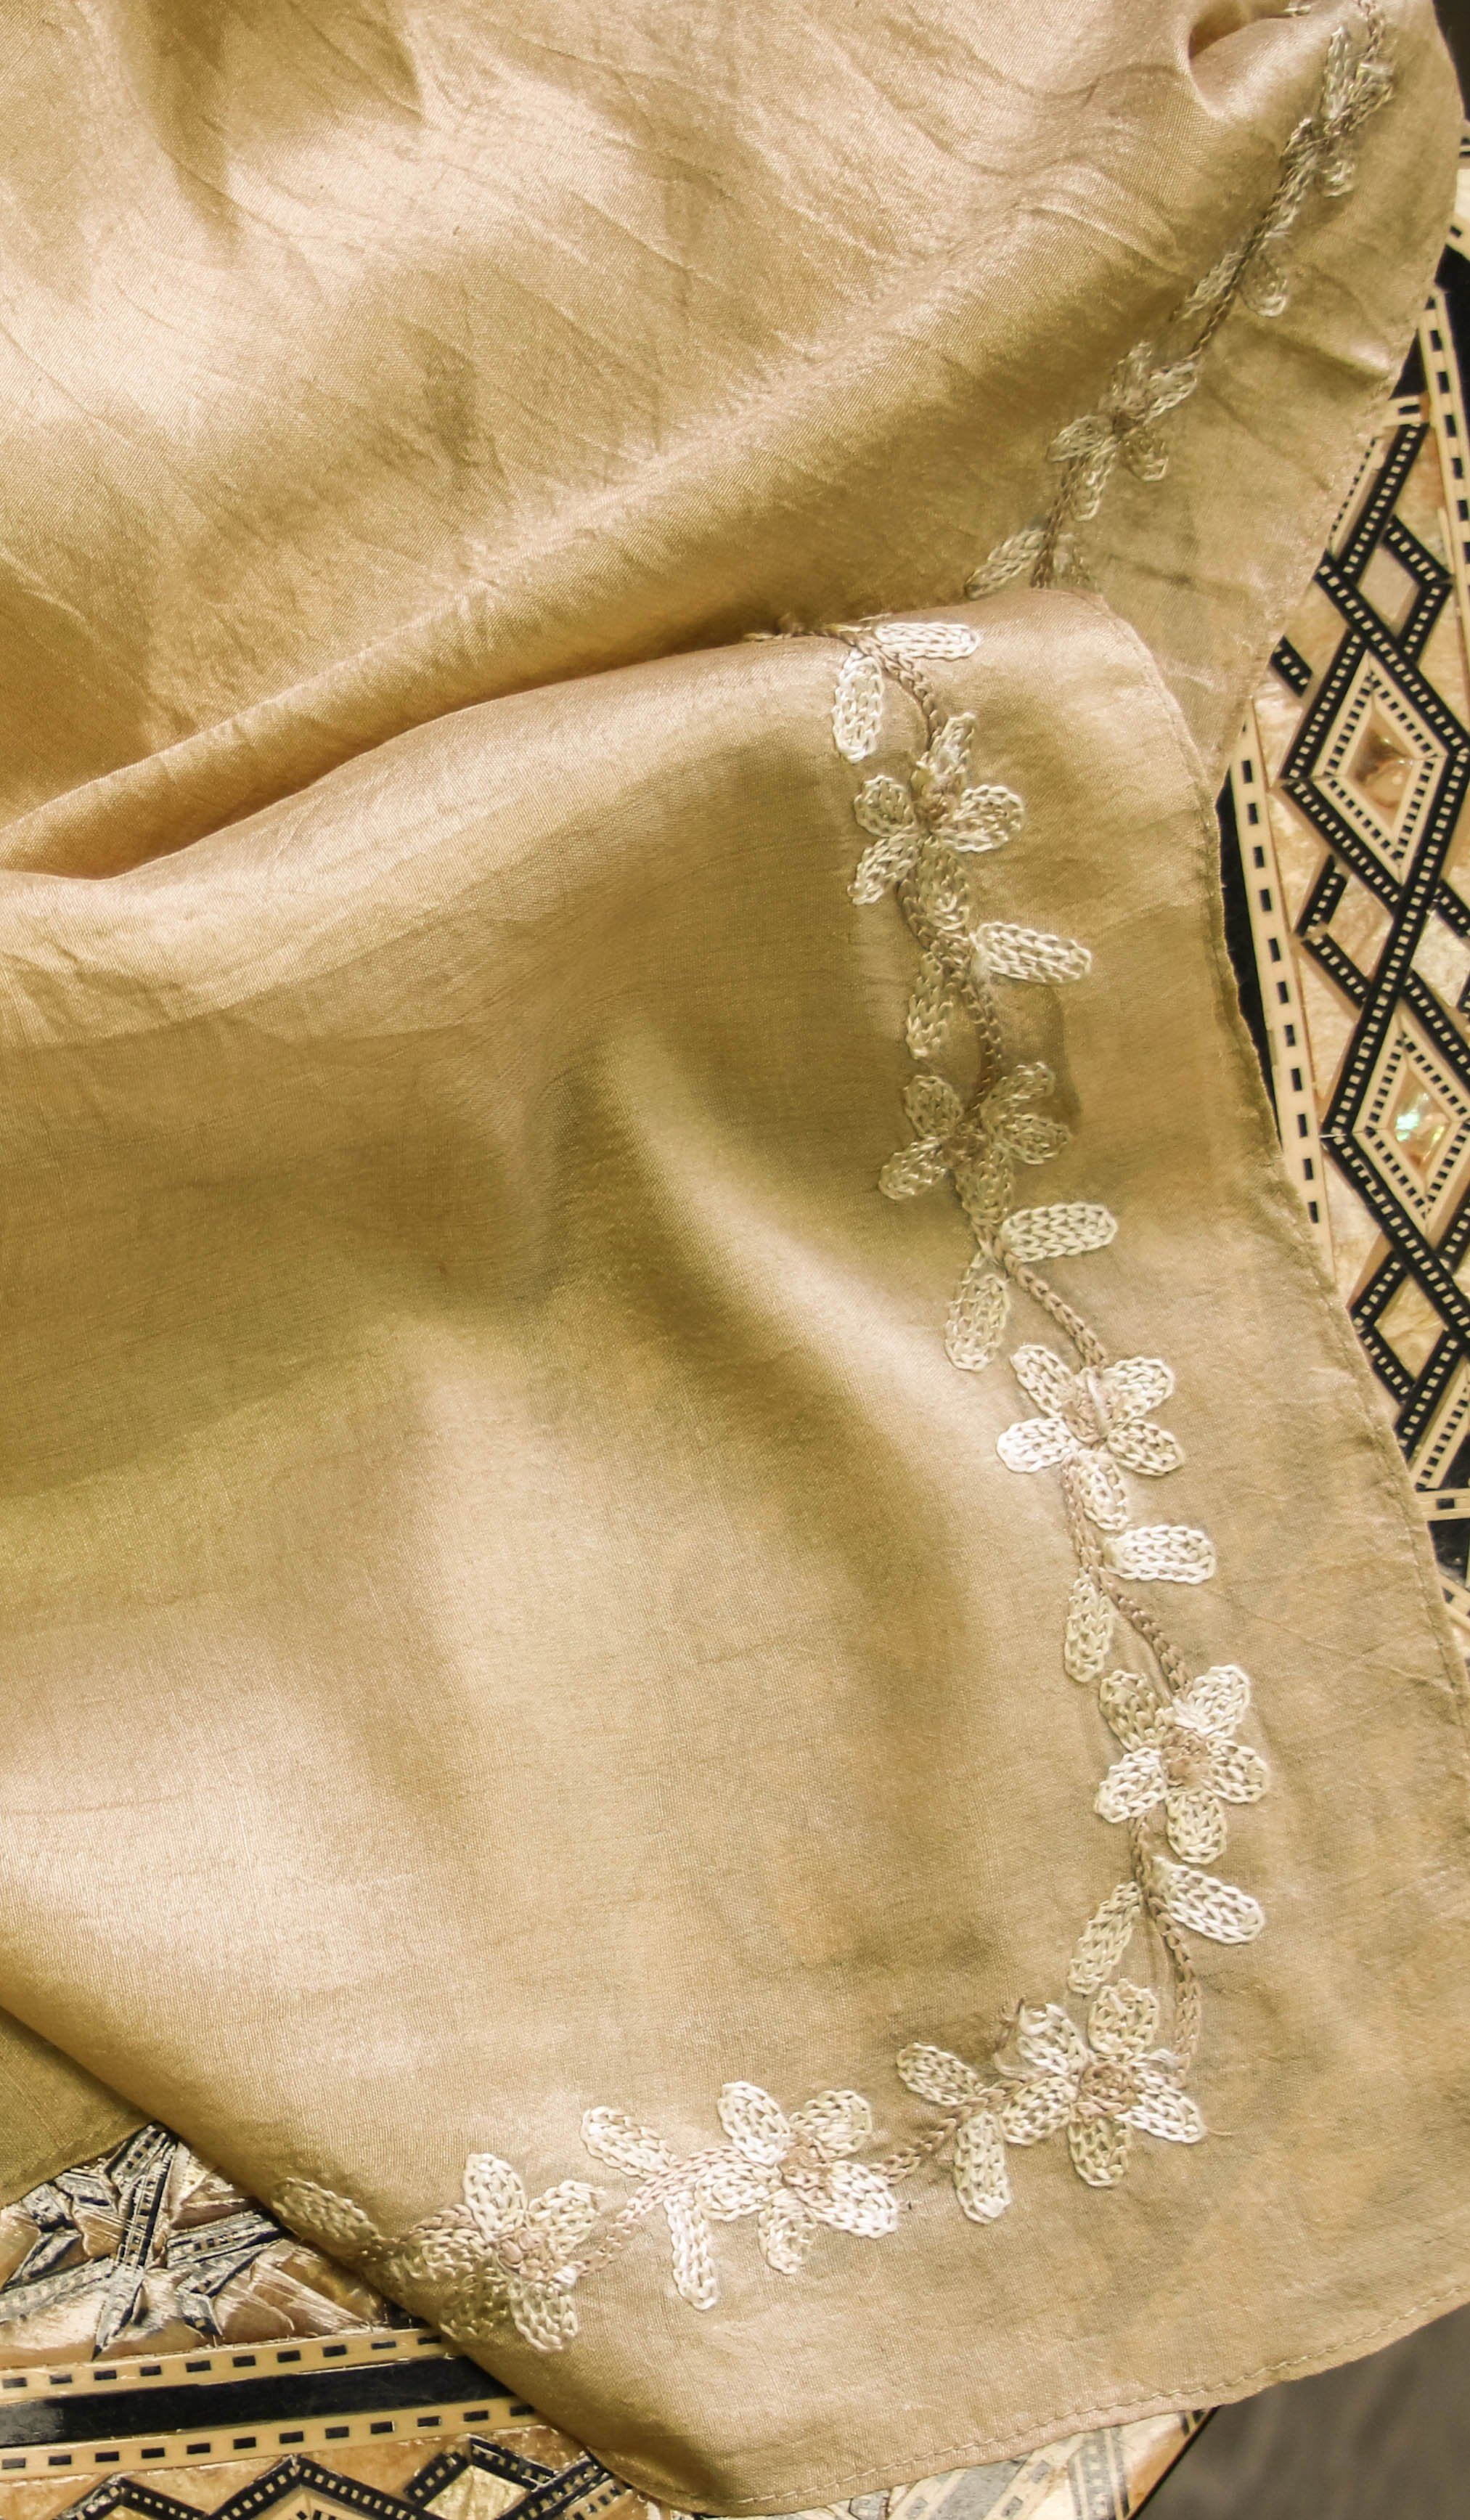 Arwa Hand Embroidered Silk Wrap Hijab Scarf - Gold